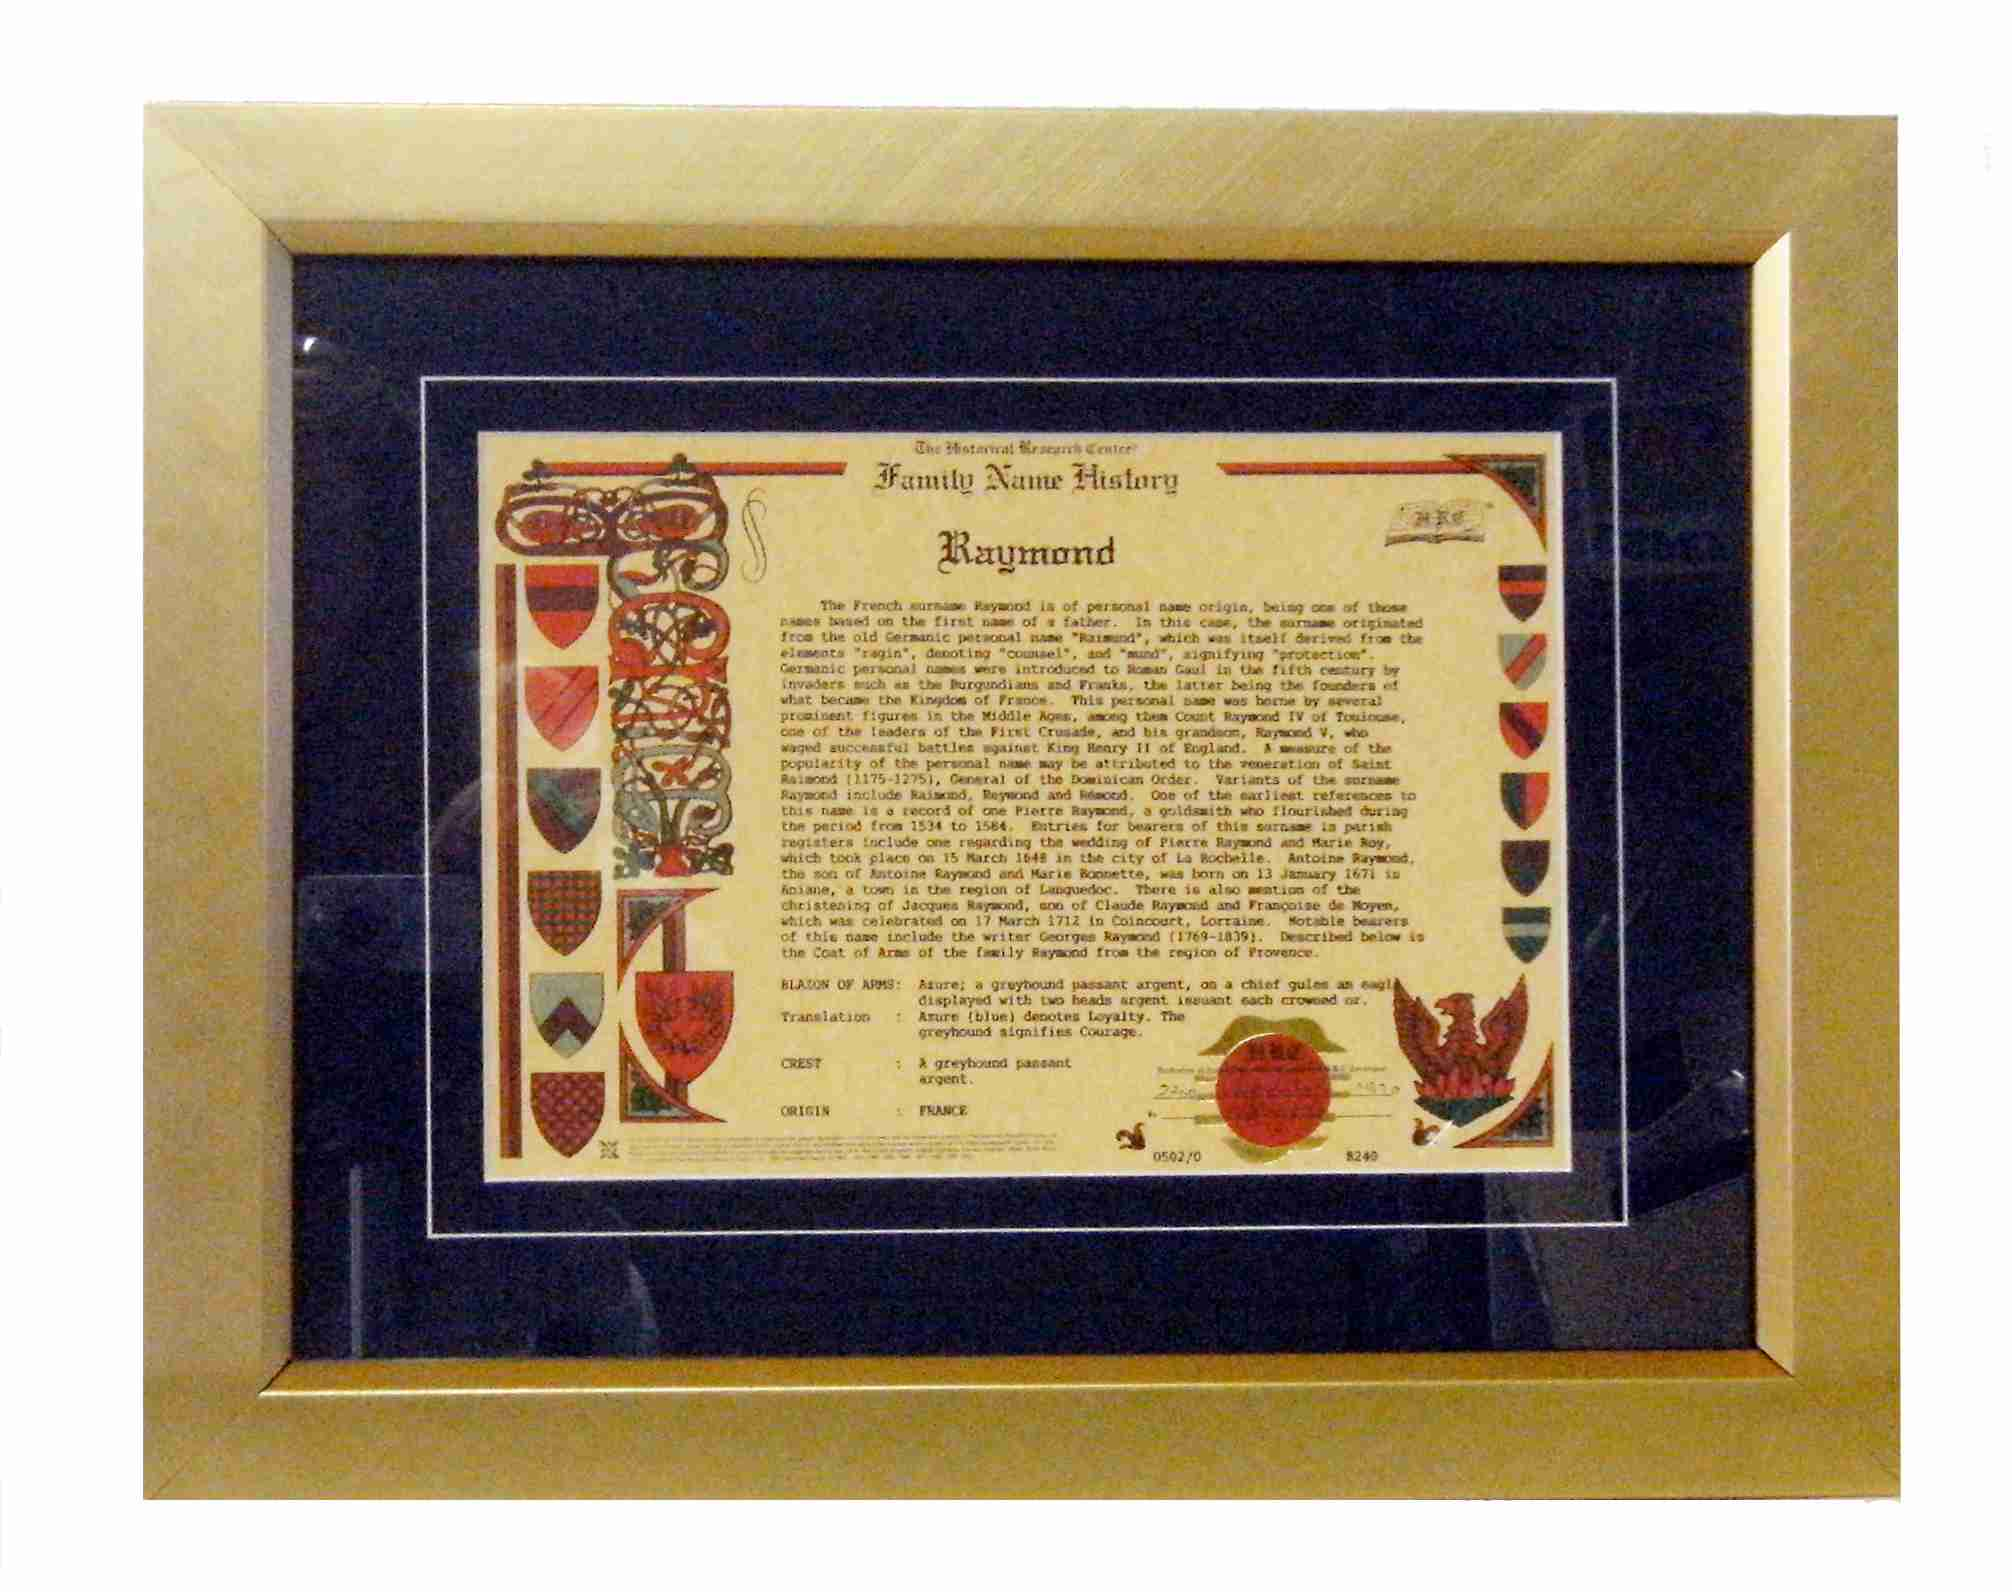 Family Name History Certificates | Coat of Arms and Family Names